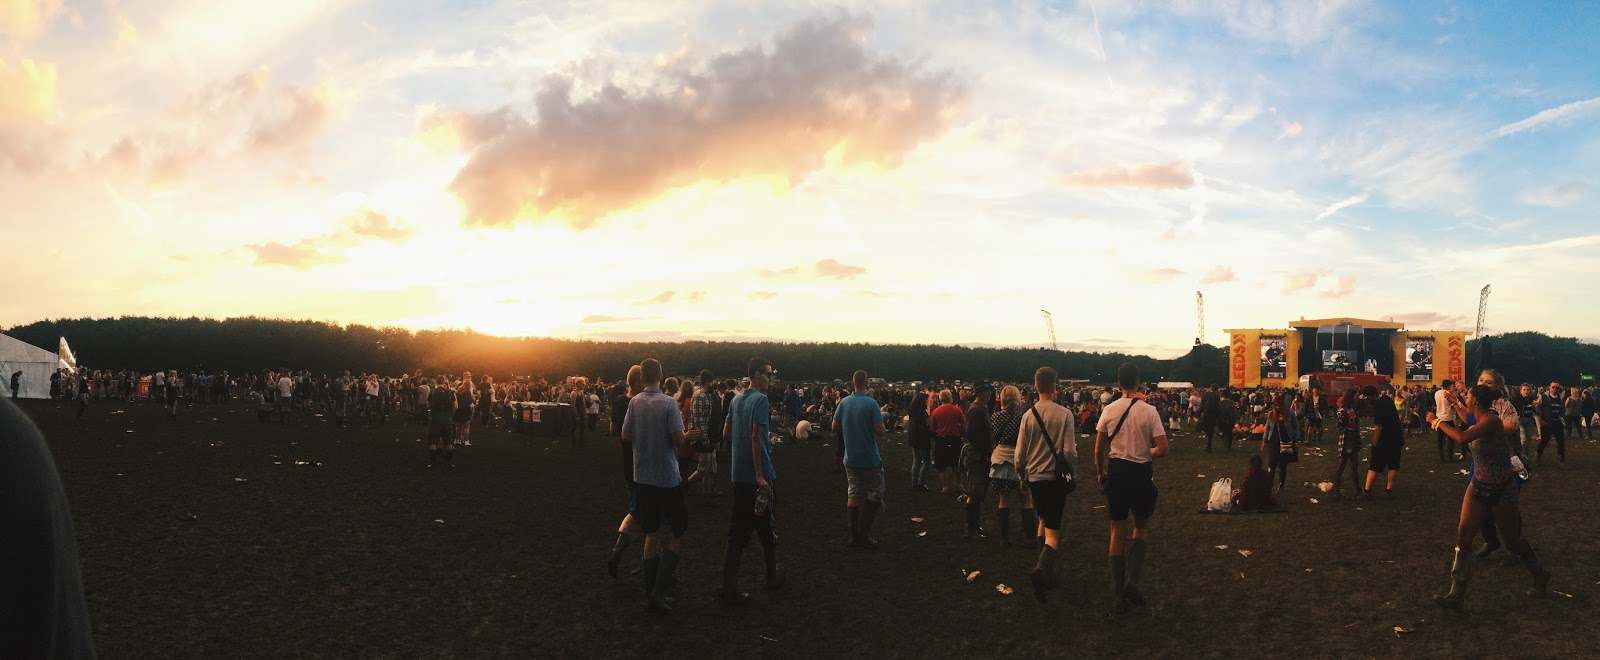 Leeds festival panorama of the arena 2016